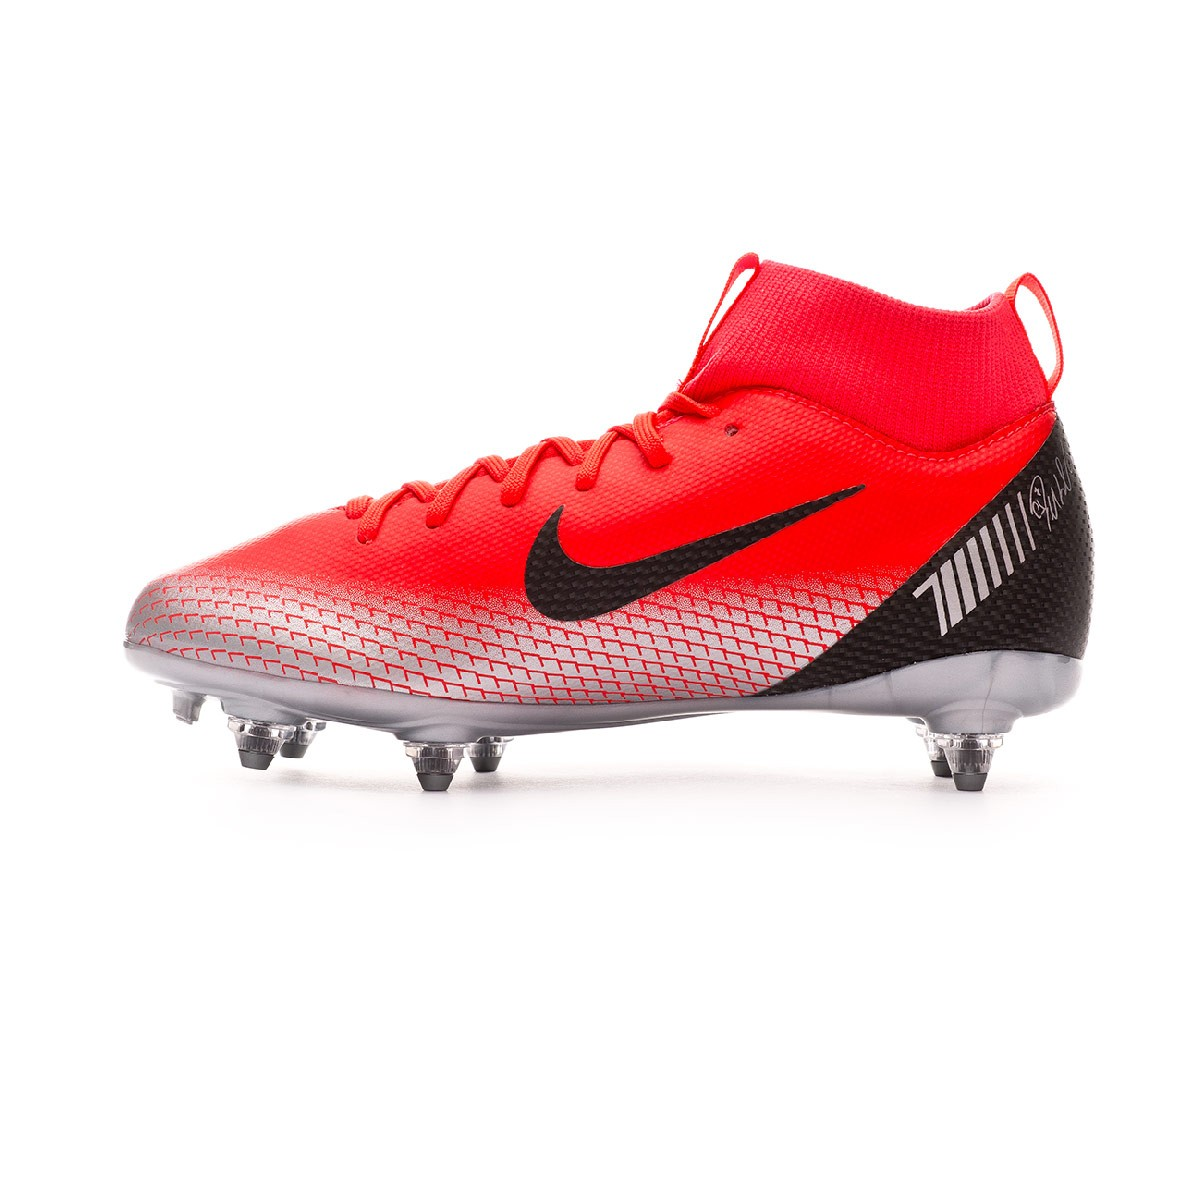 30abb8f83 Scarpe Nike Mercurial Superfly VI Academy CR7 SG-Pro Junior Bright  crimson-Black-Chrome-Dark grey - Negozio di calcio Fútbol Emotion